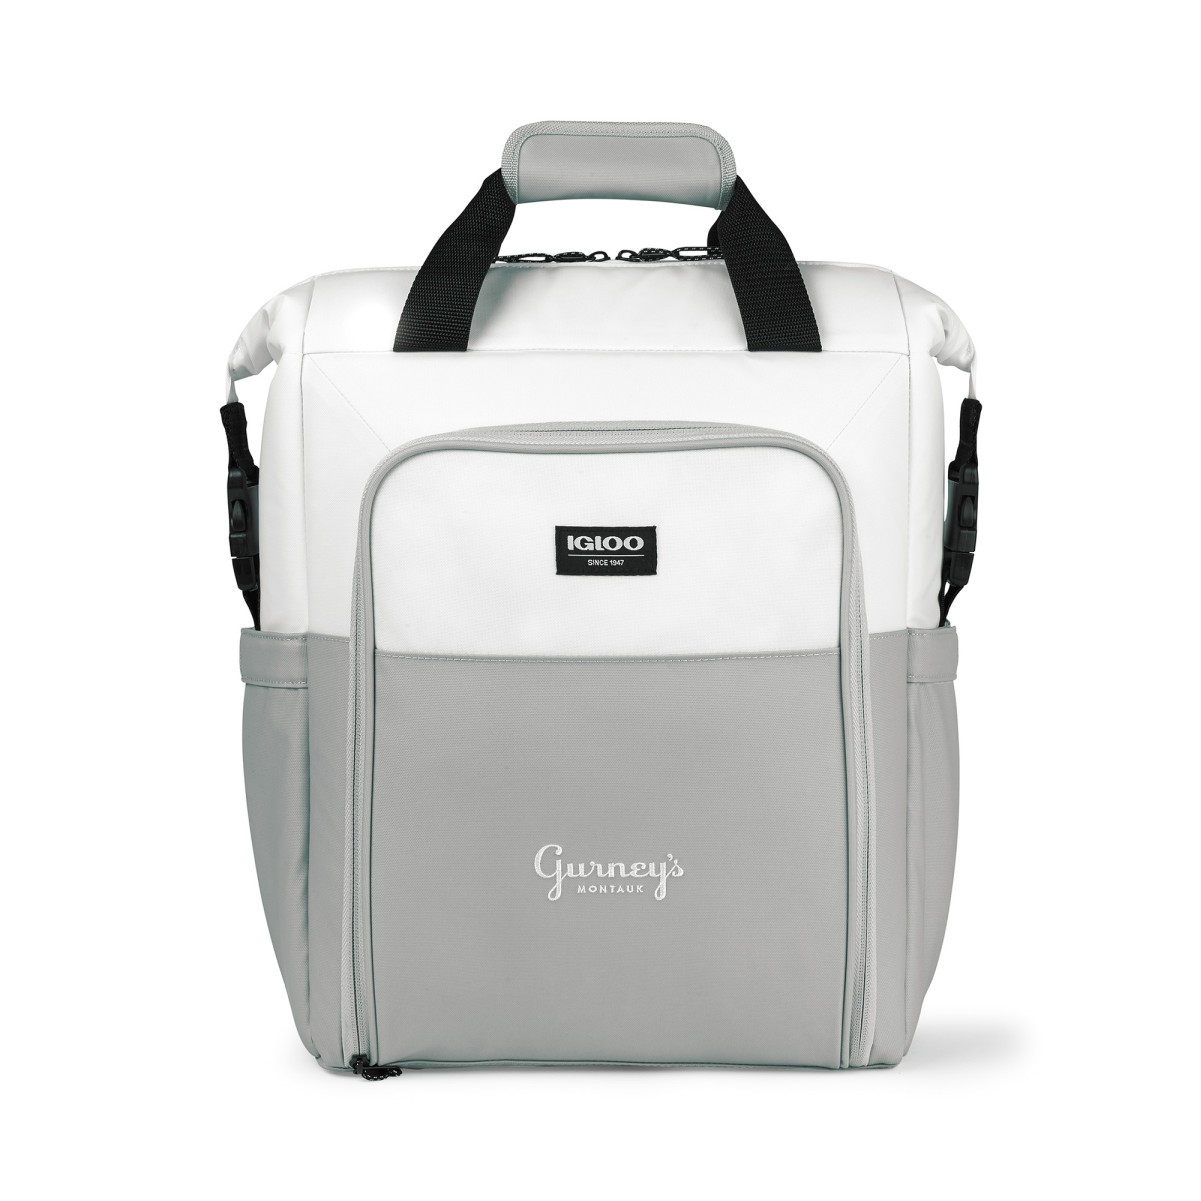 igloo cooler backpack